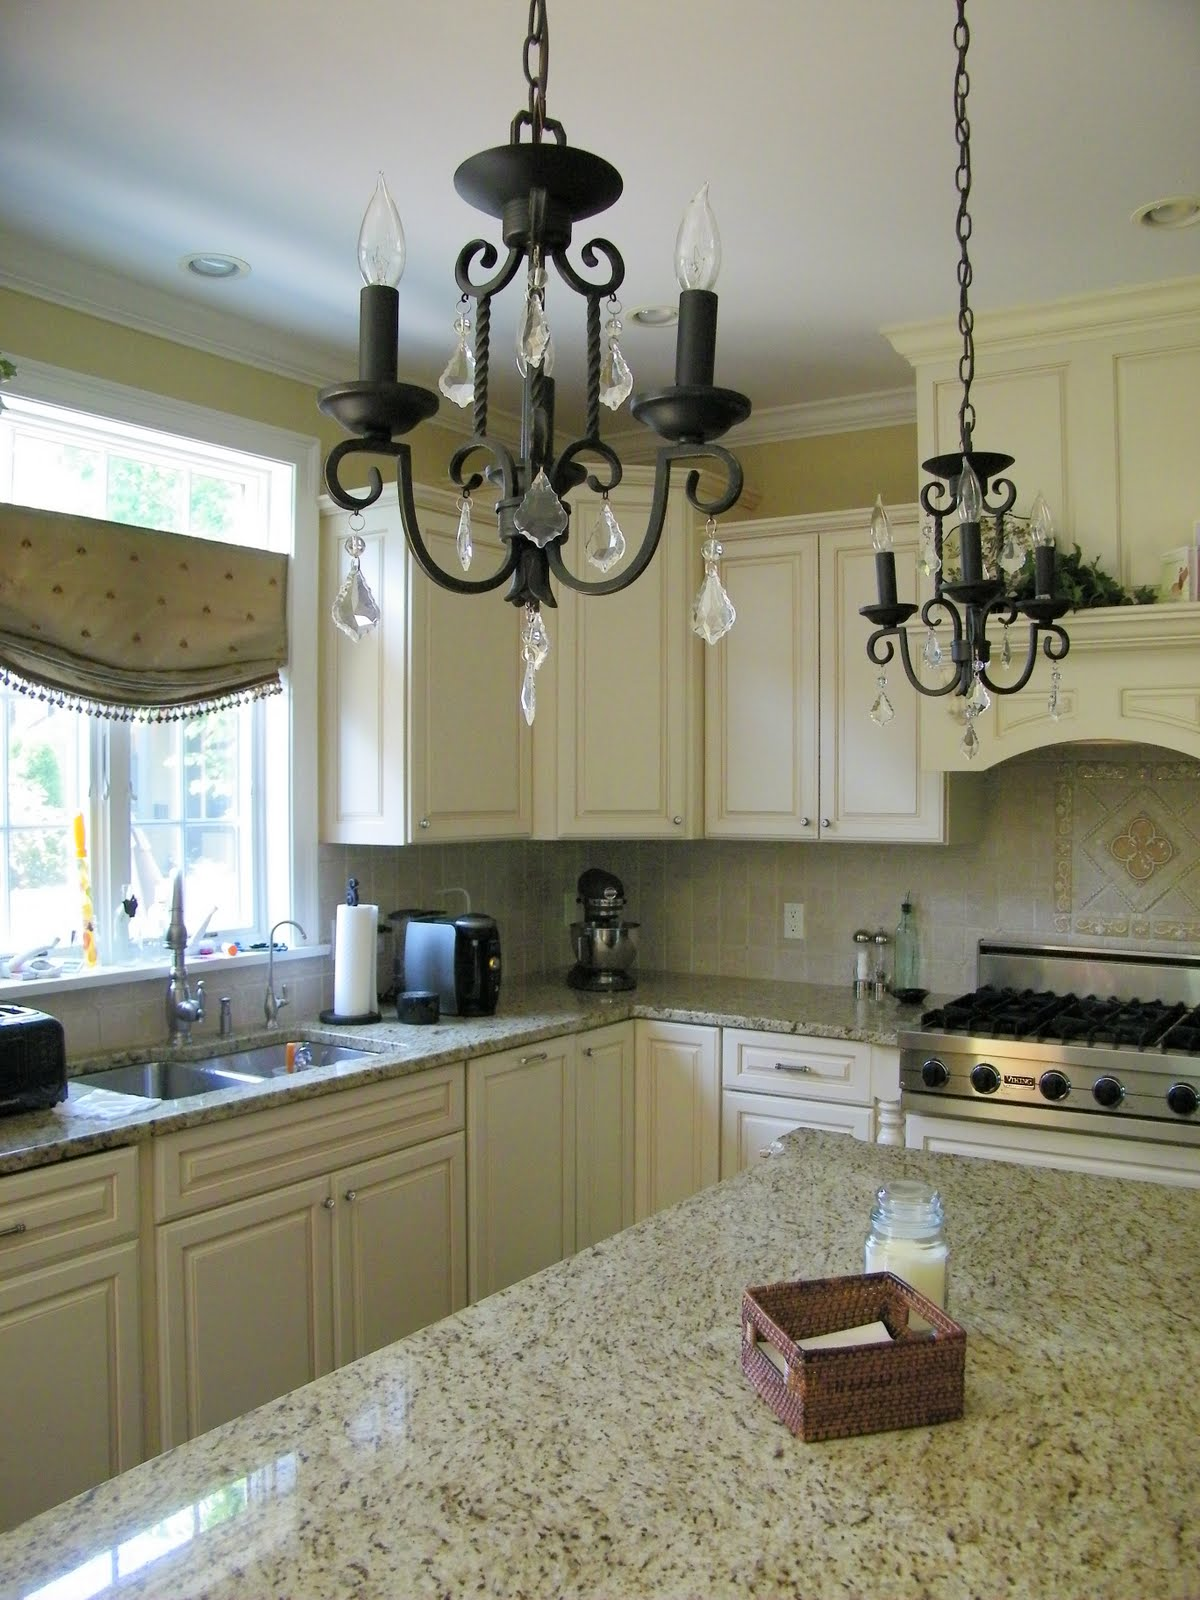 Double iron and crystal chandeliers and creamy ivory cabinets.